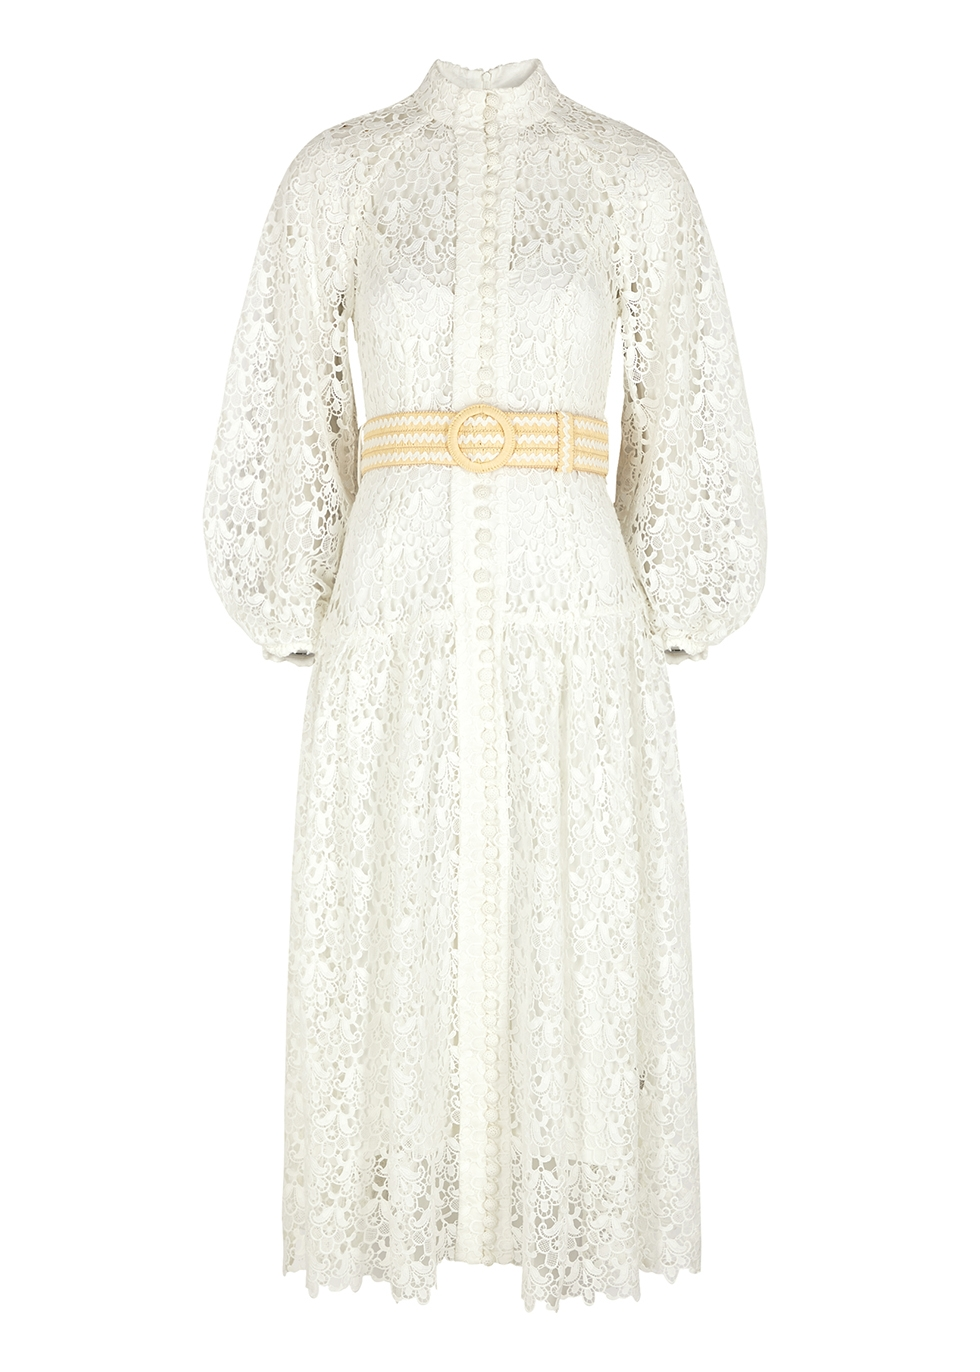 Empire white belted guipure lace dress